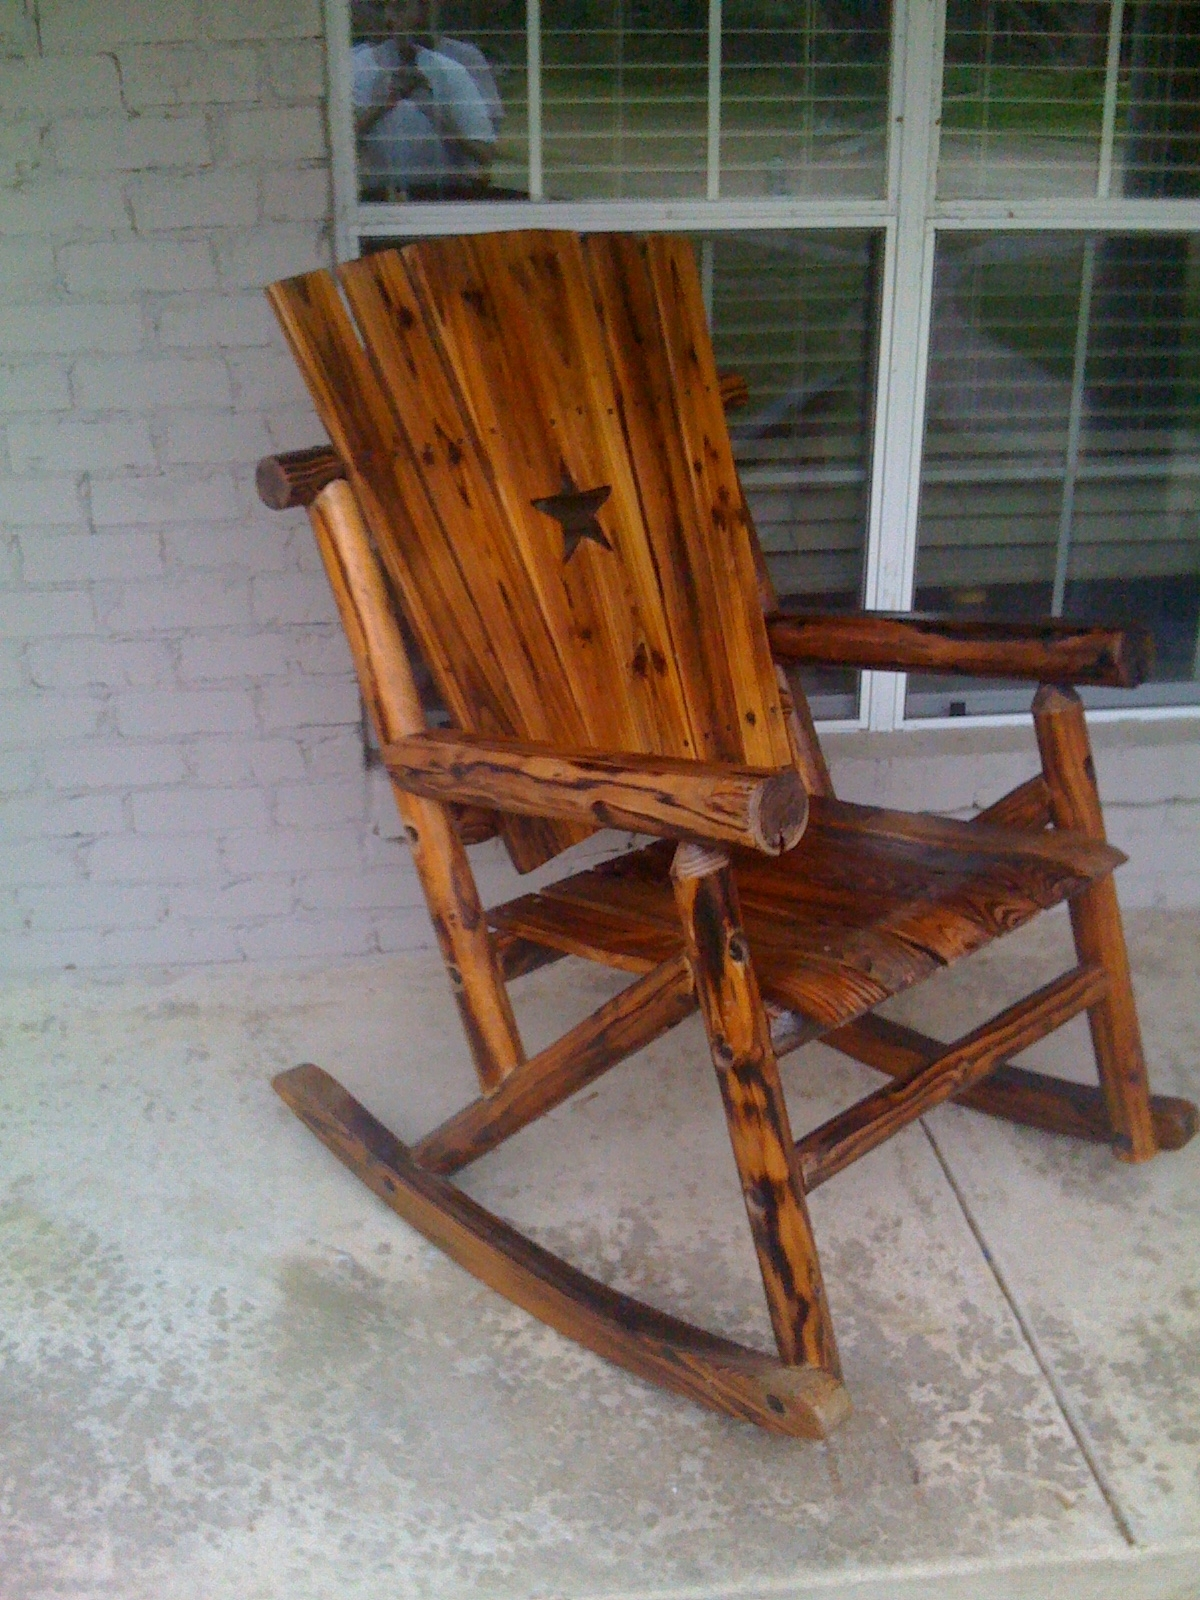 Preferred Rocking Chairs For Outdoors Regarding Outdoor Wooden Rocking Chairs Rustic : Pleasure Outdoor Wooden (View 9 of 20)